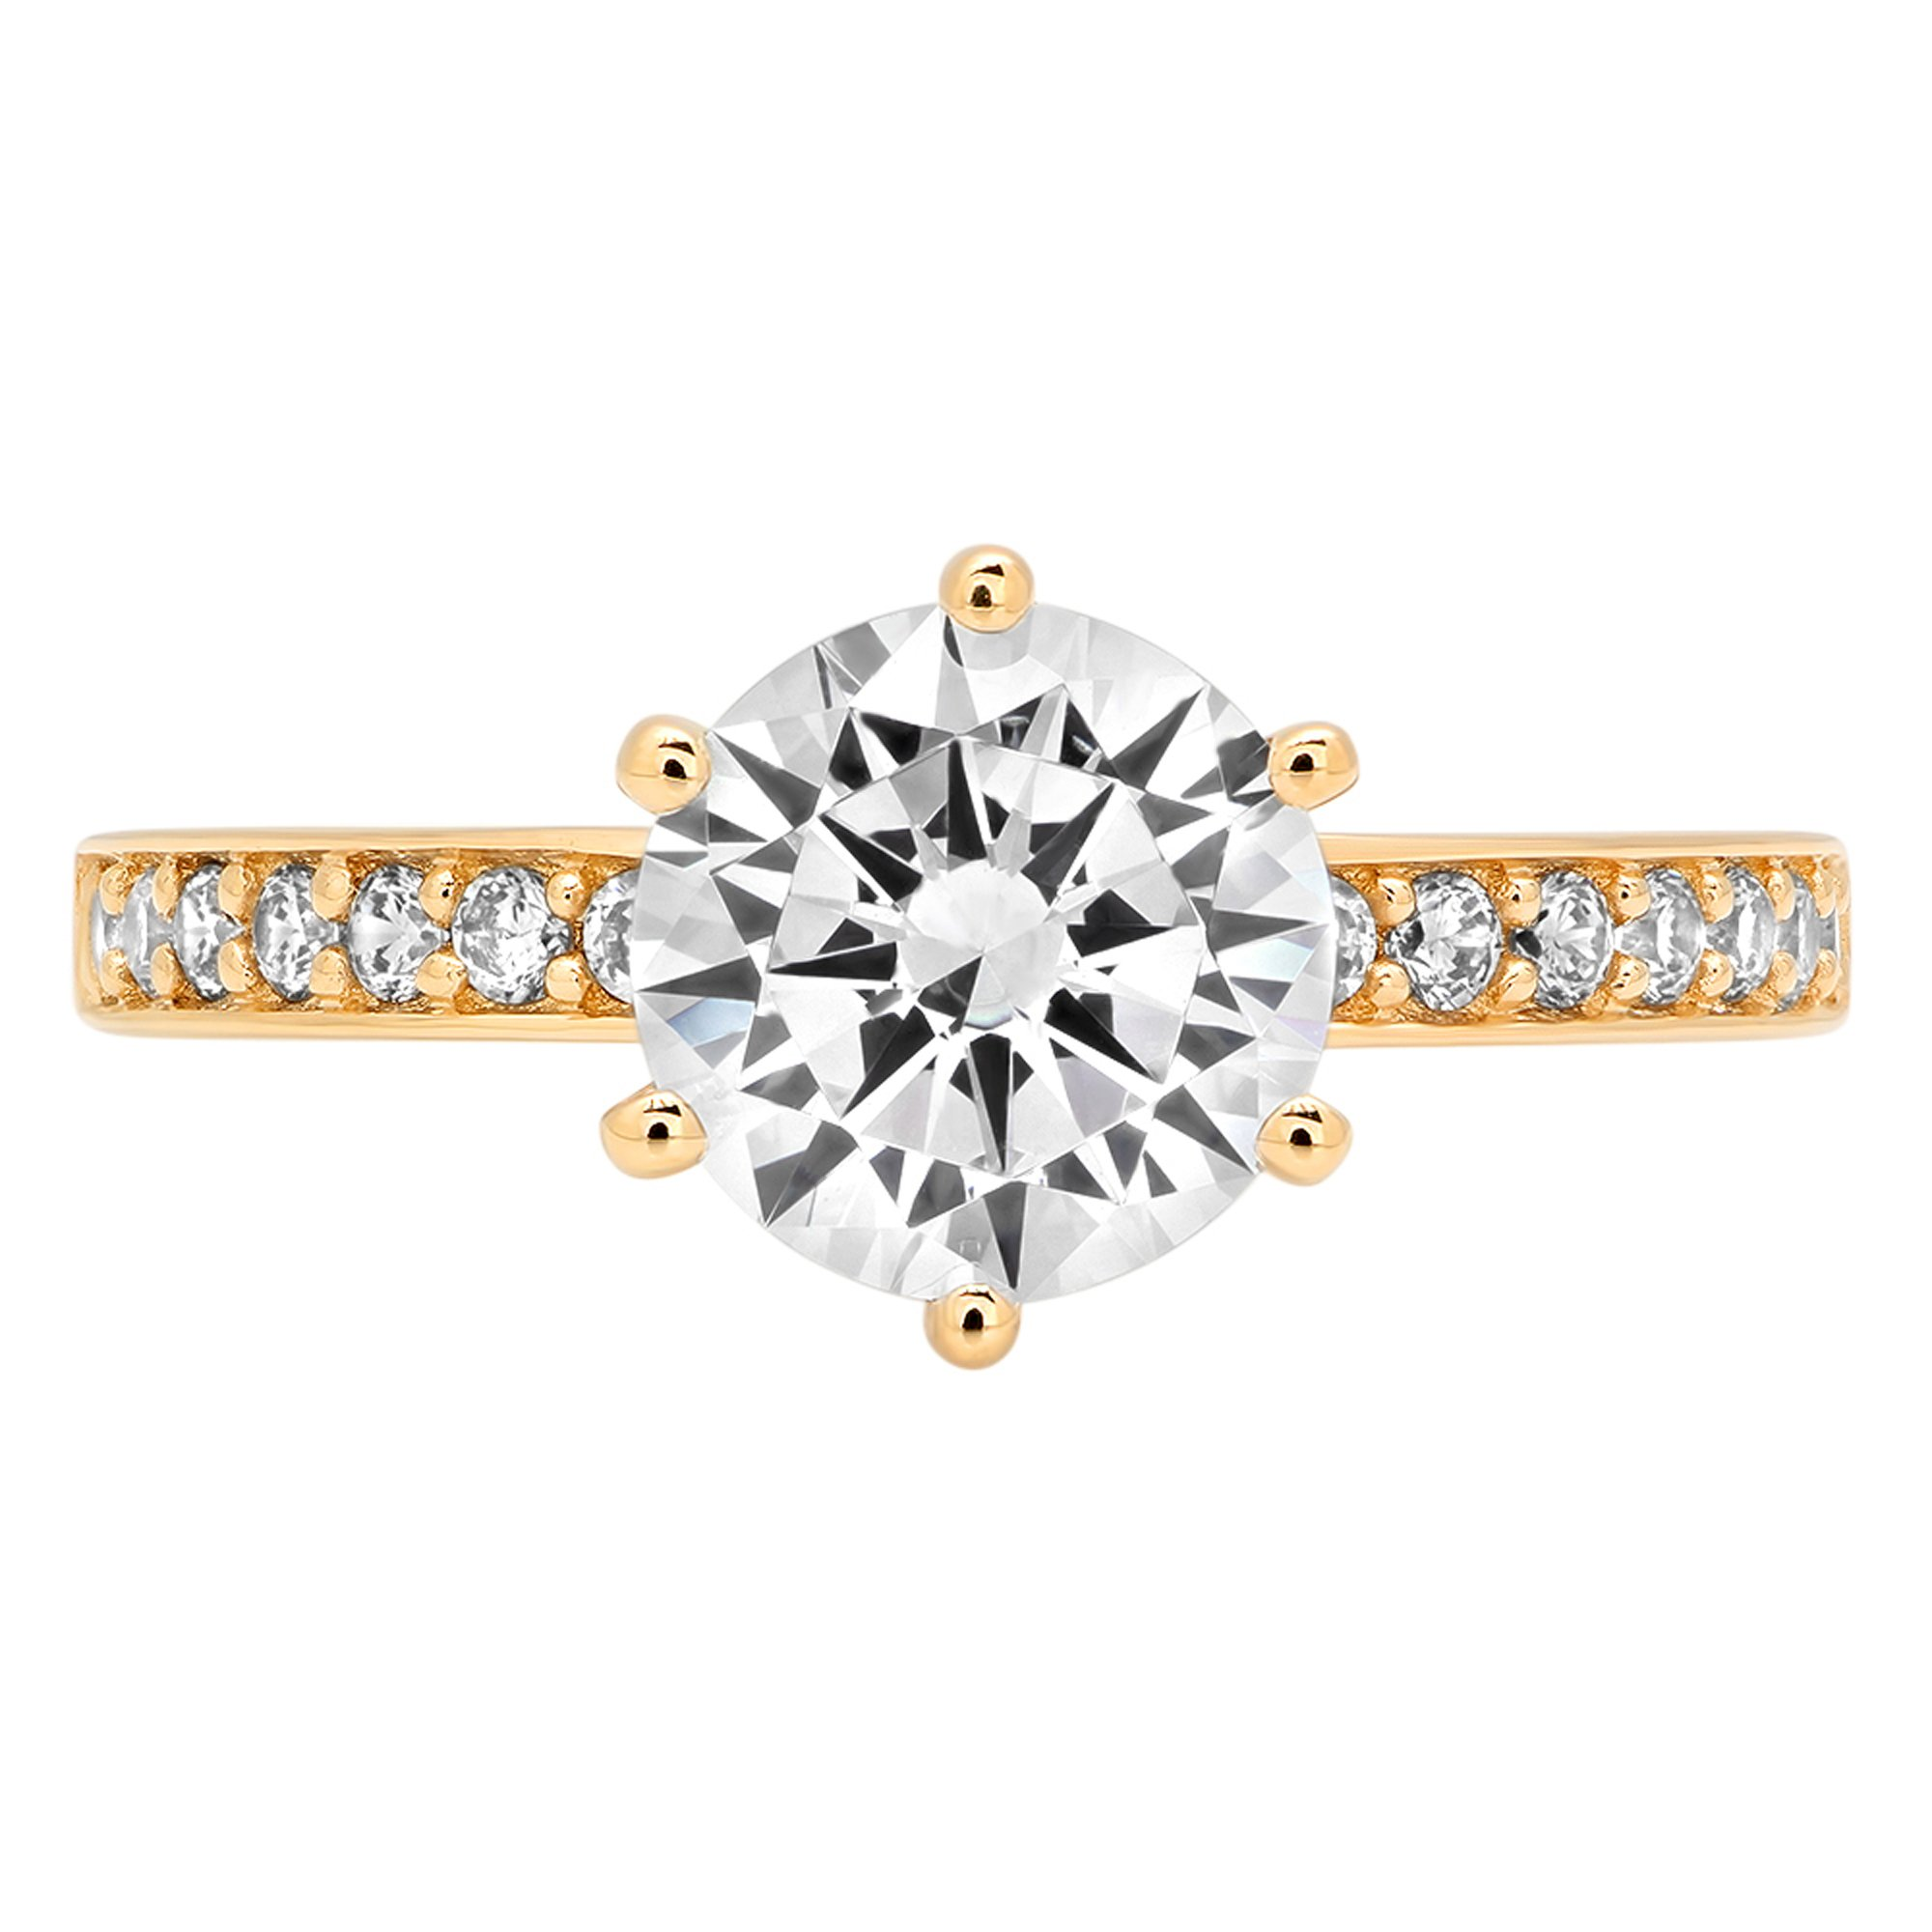 Clara Pucci 2.06 ct Brilliant Round Cut CZ Designer Accent Solitaire Ring in Solid 14k Yellow Gold